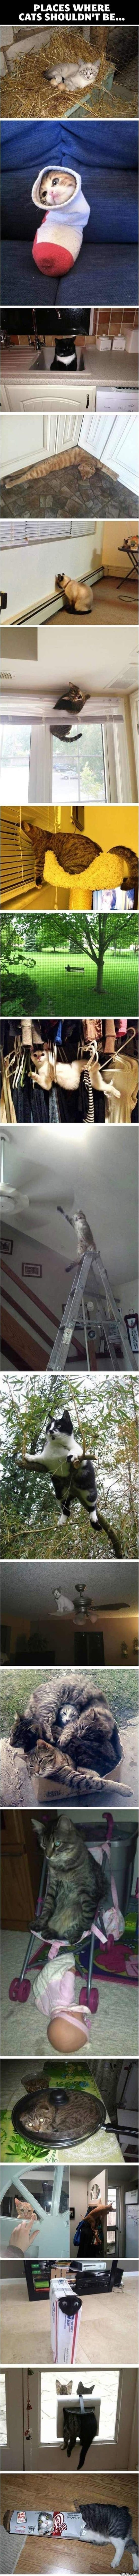 cats-in-places-they-shouldnt-be-meme